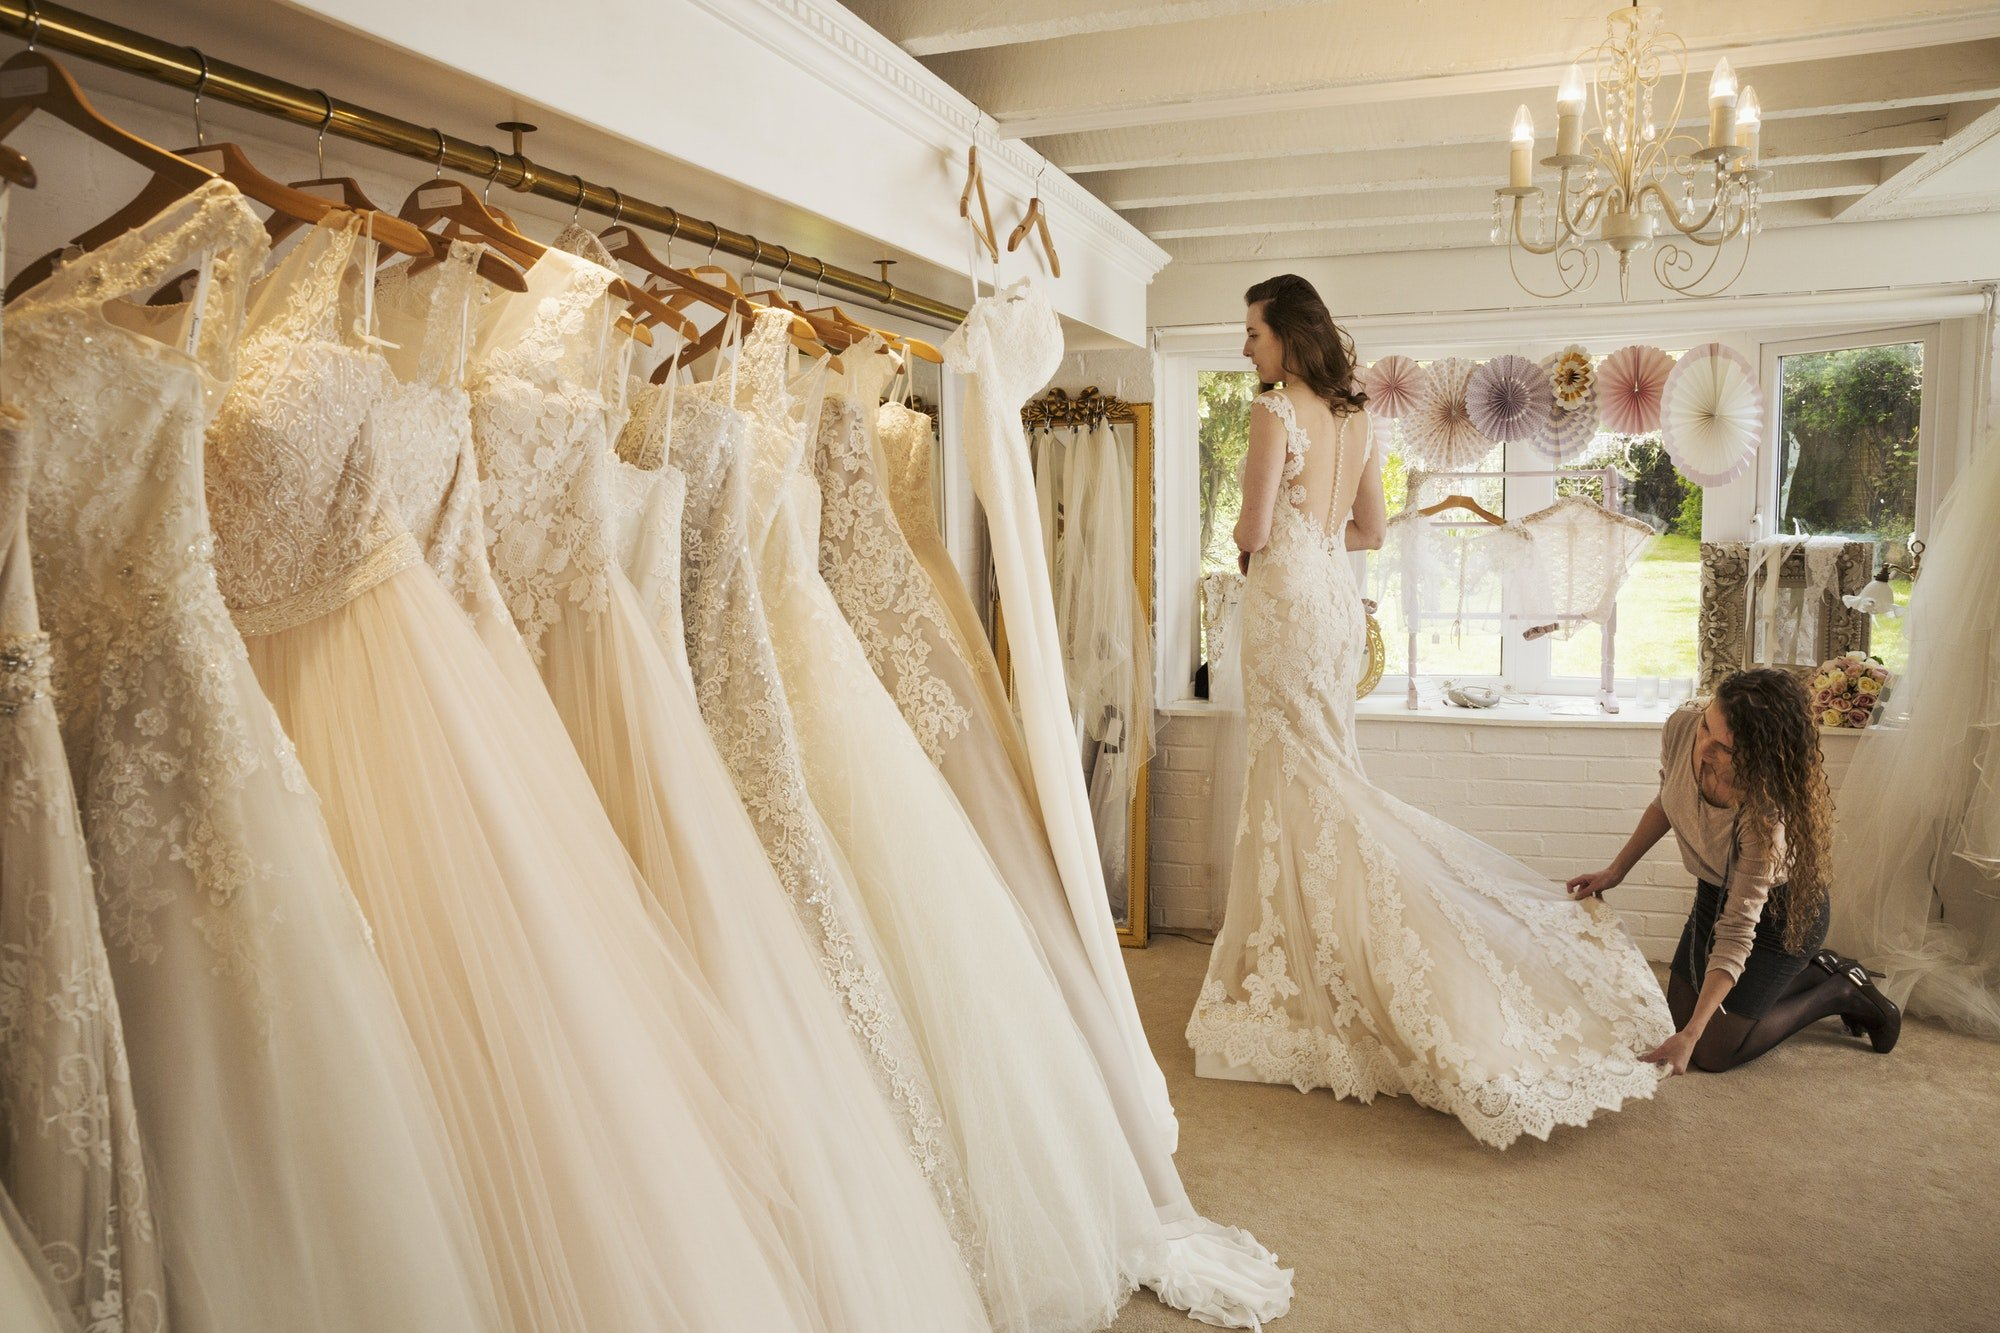 Rows of wedding dresses on display in a specialist wedding dress shop.